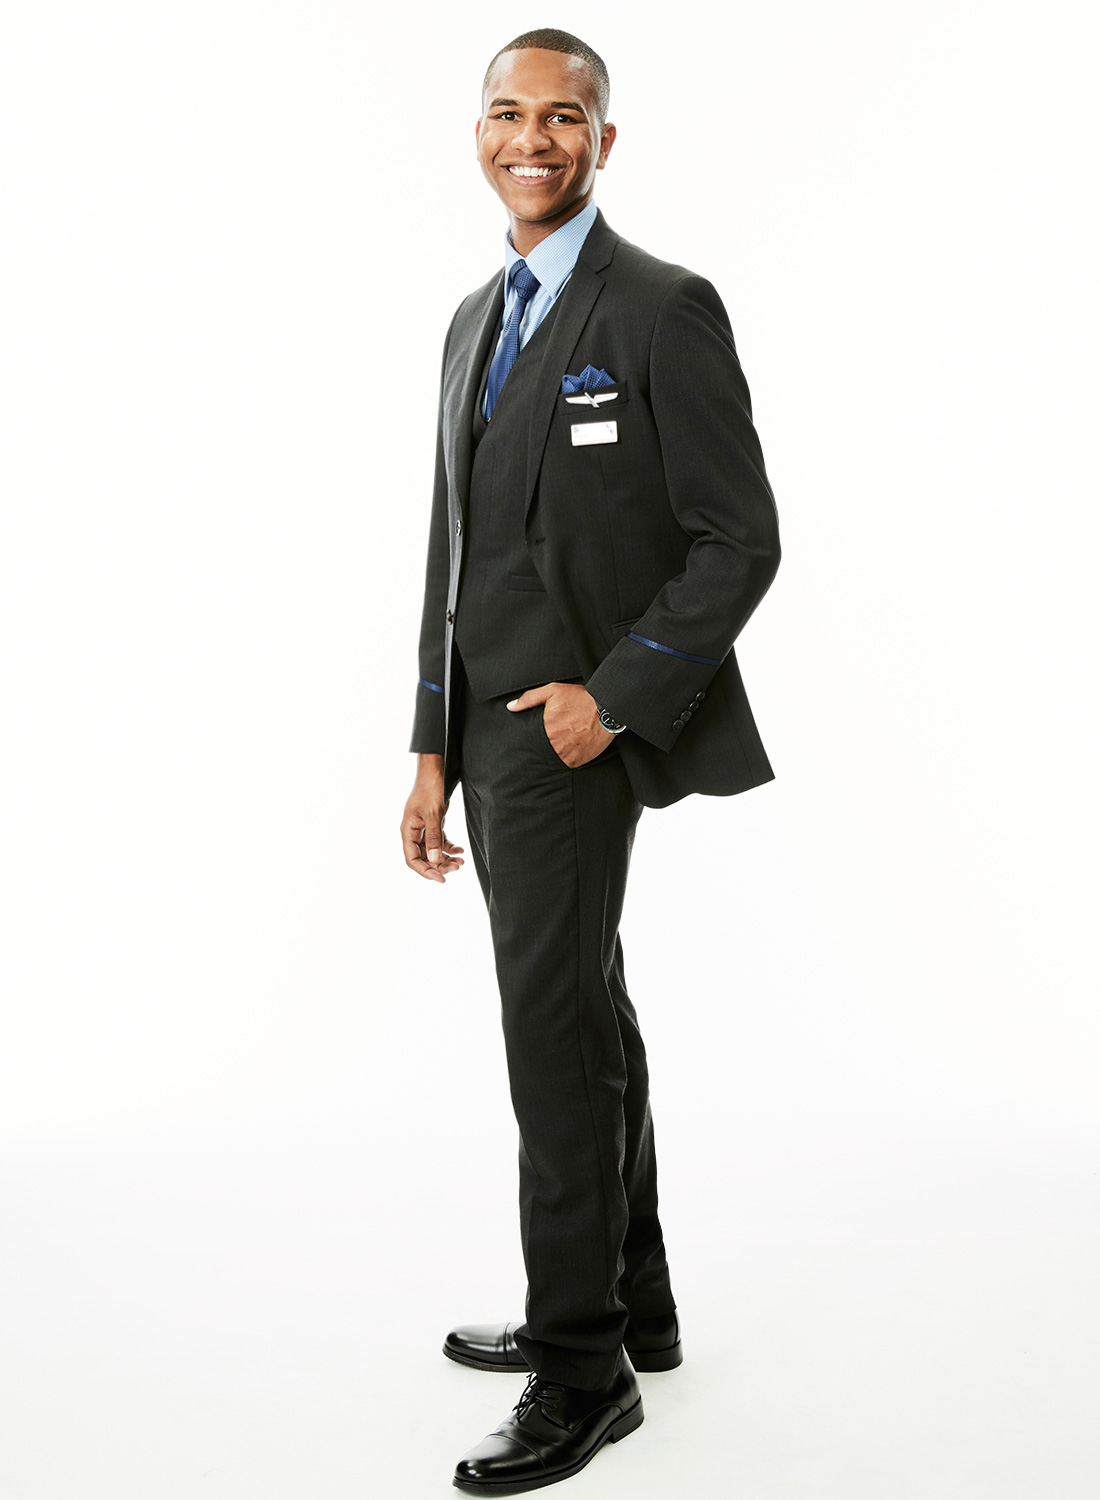 160920_AmericanAirlines_Portraits_By_BriJohnson_0027.jpg